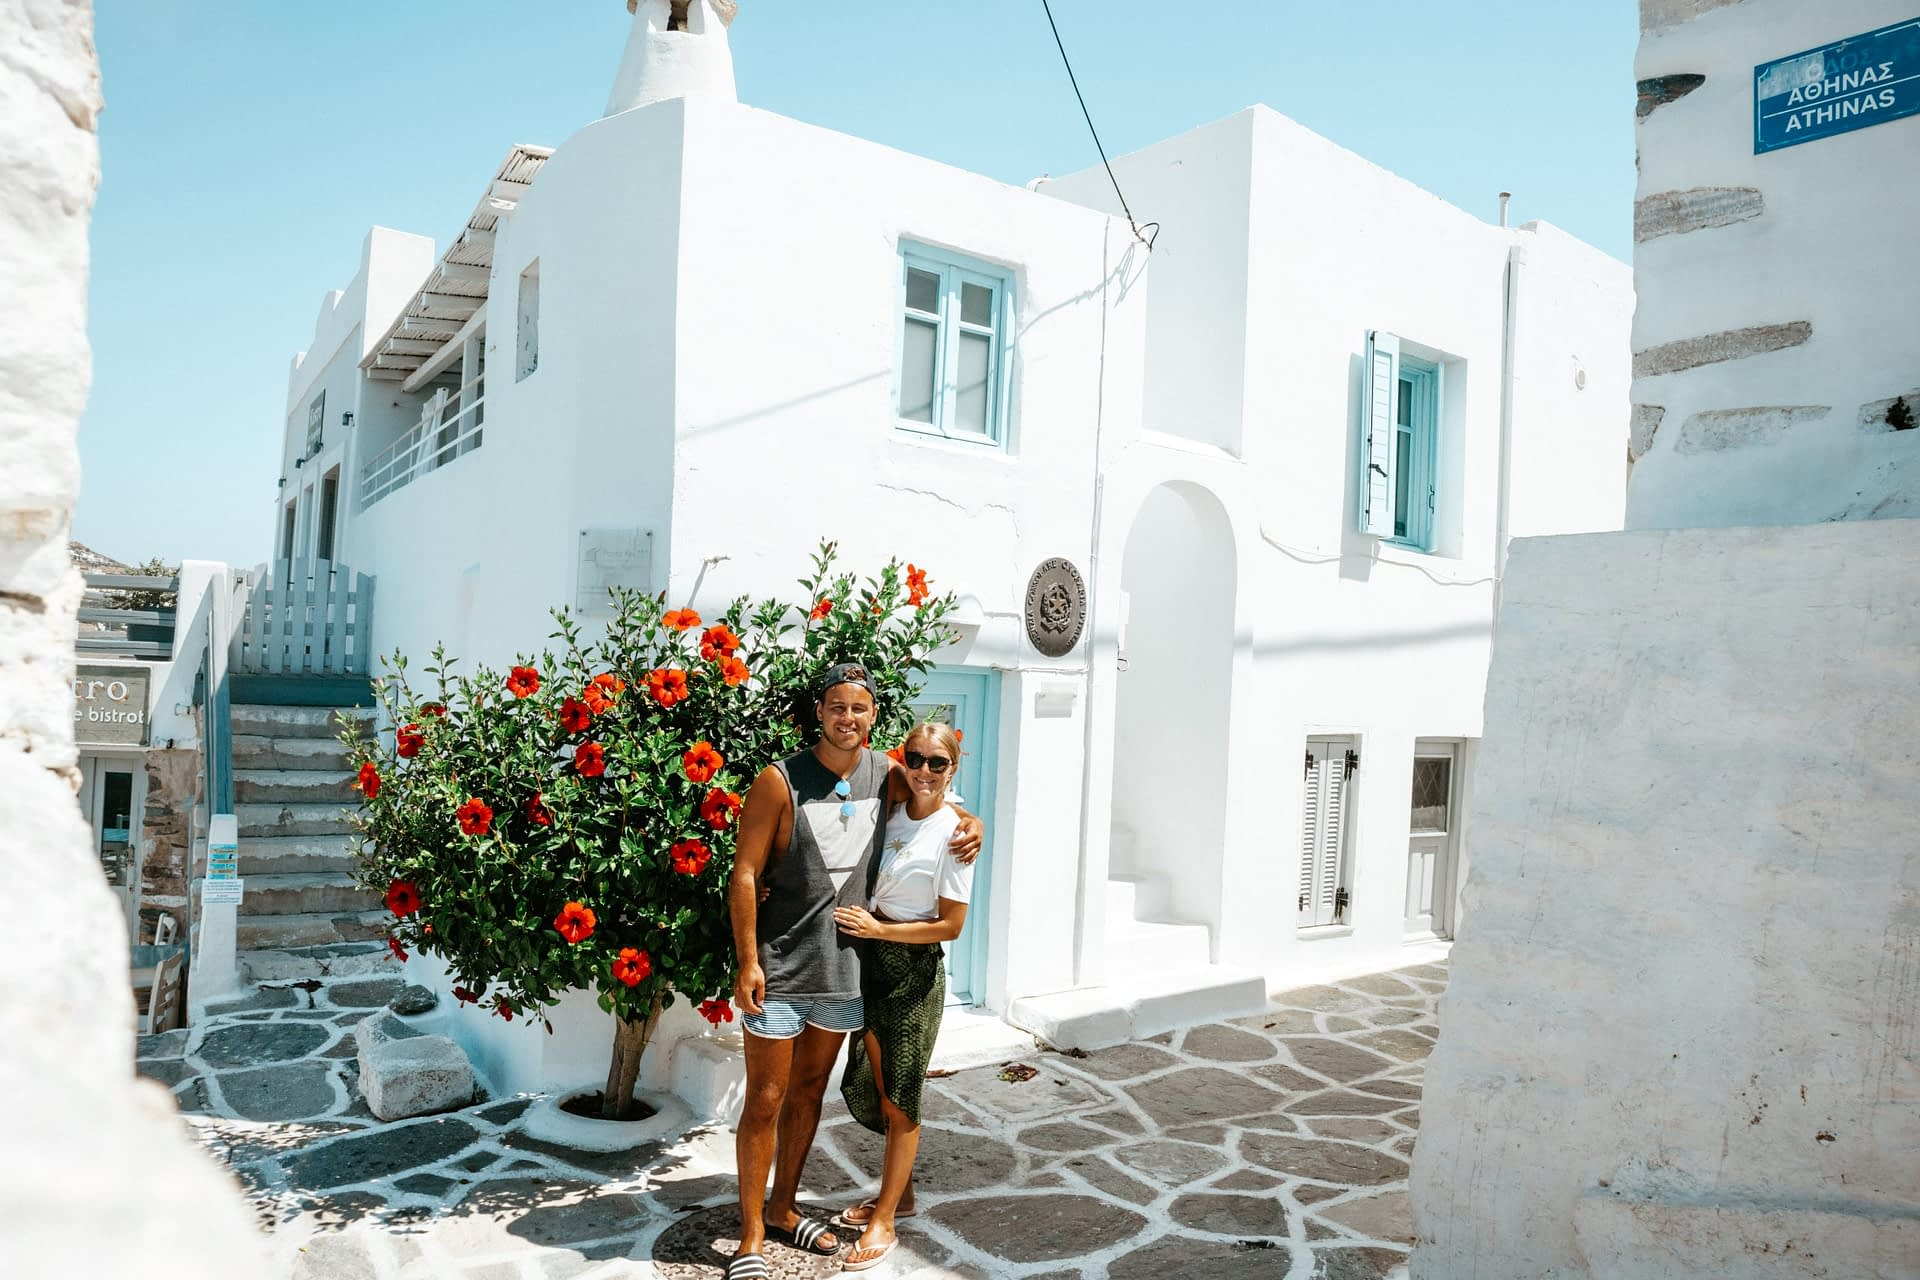 A couple stood in the alleyway of Parakia, Paros. Things to see in Paros